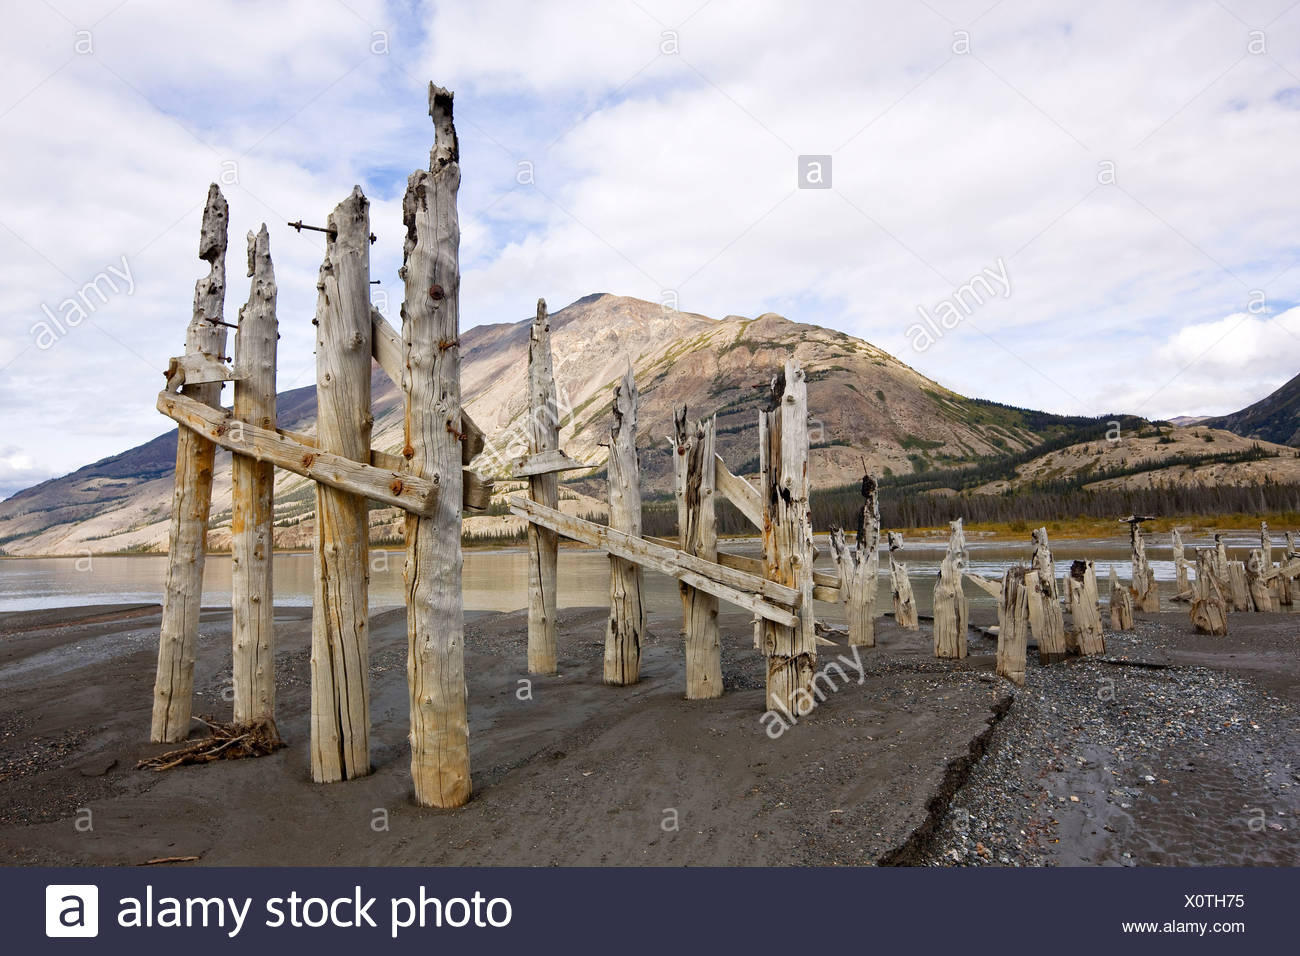 Pillings from the original Slims River Bridge with Sheep Mountain in the background, Kluane National Park, Yukon, Canada. - Stock Image